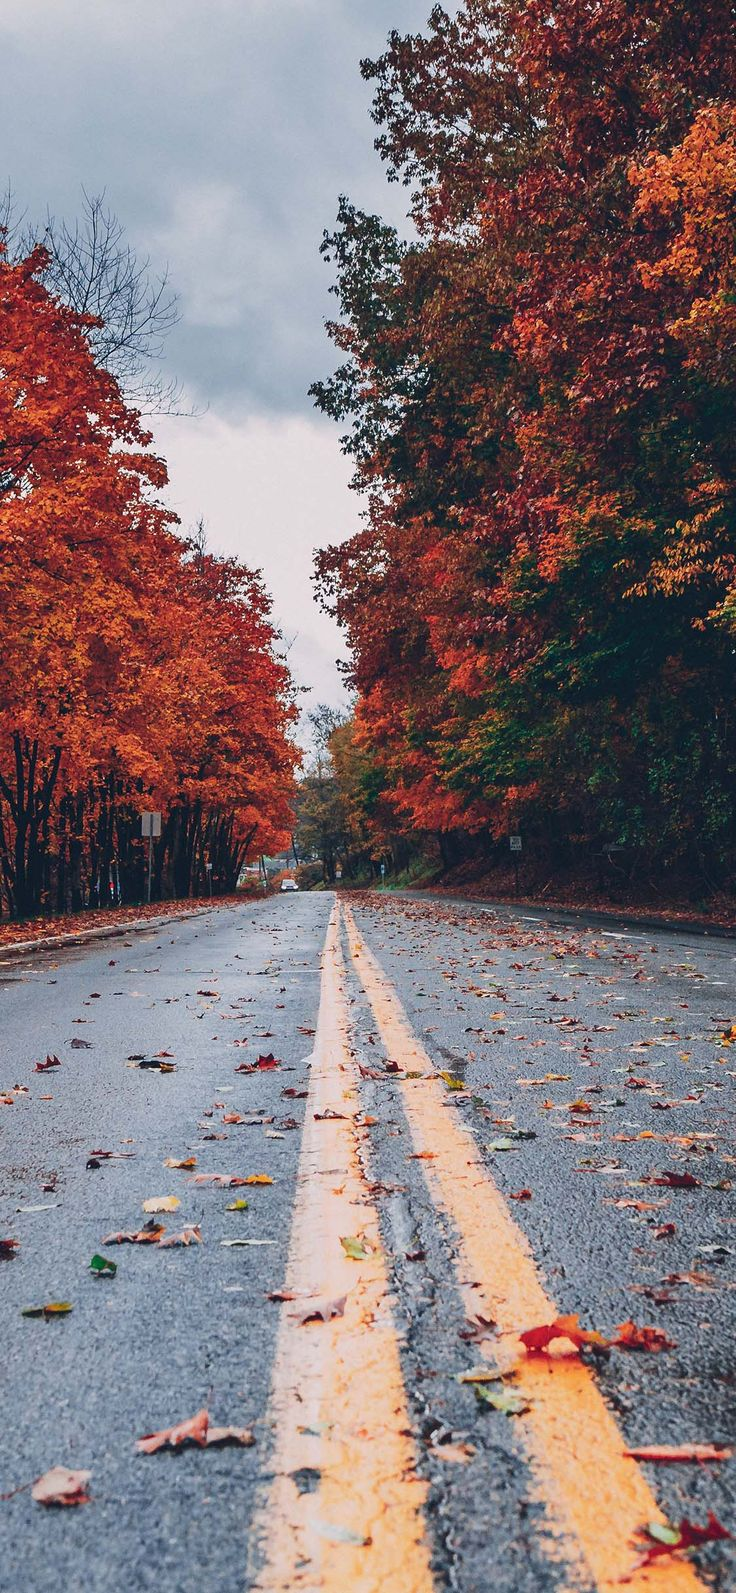 Fall Wallpapers for iPhone FREE Download Best Autumn